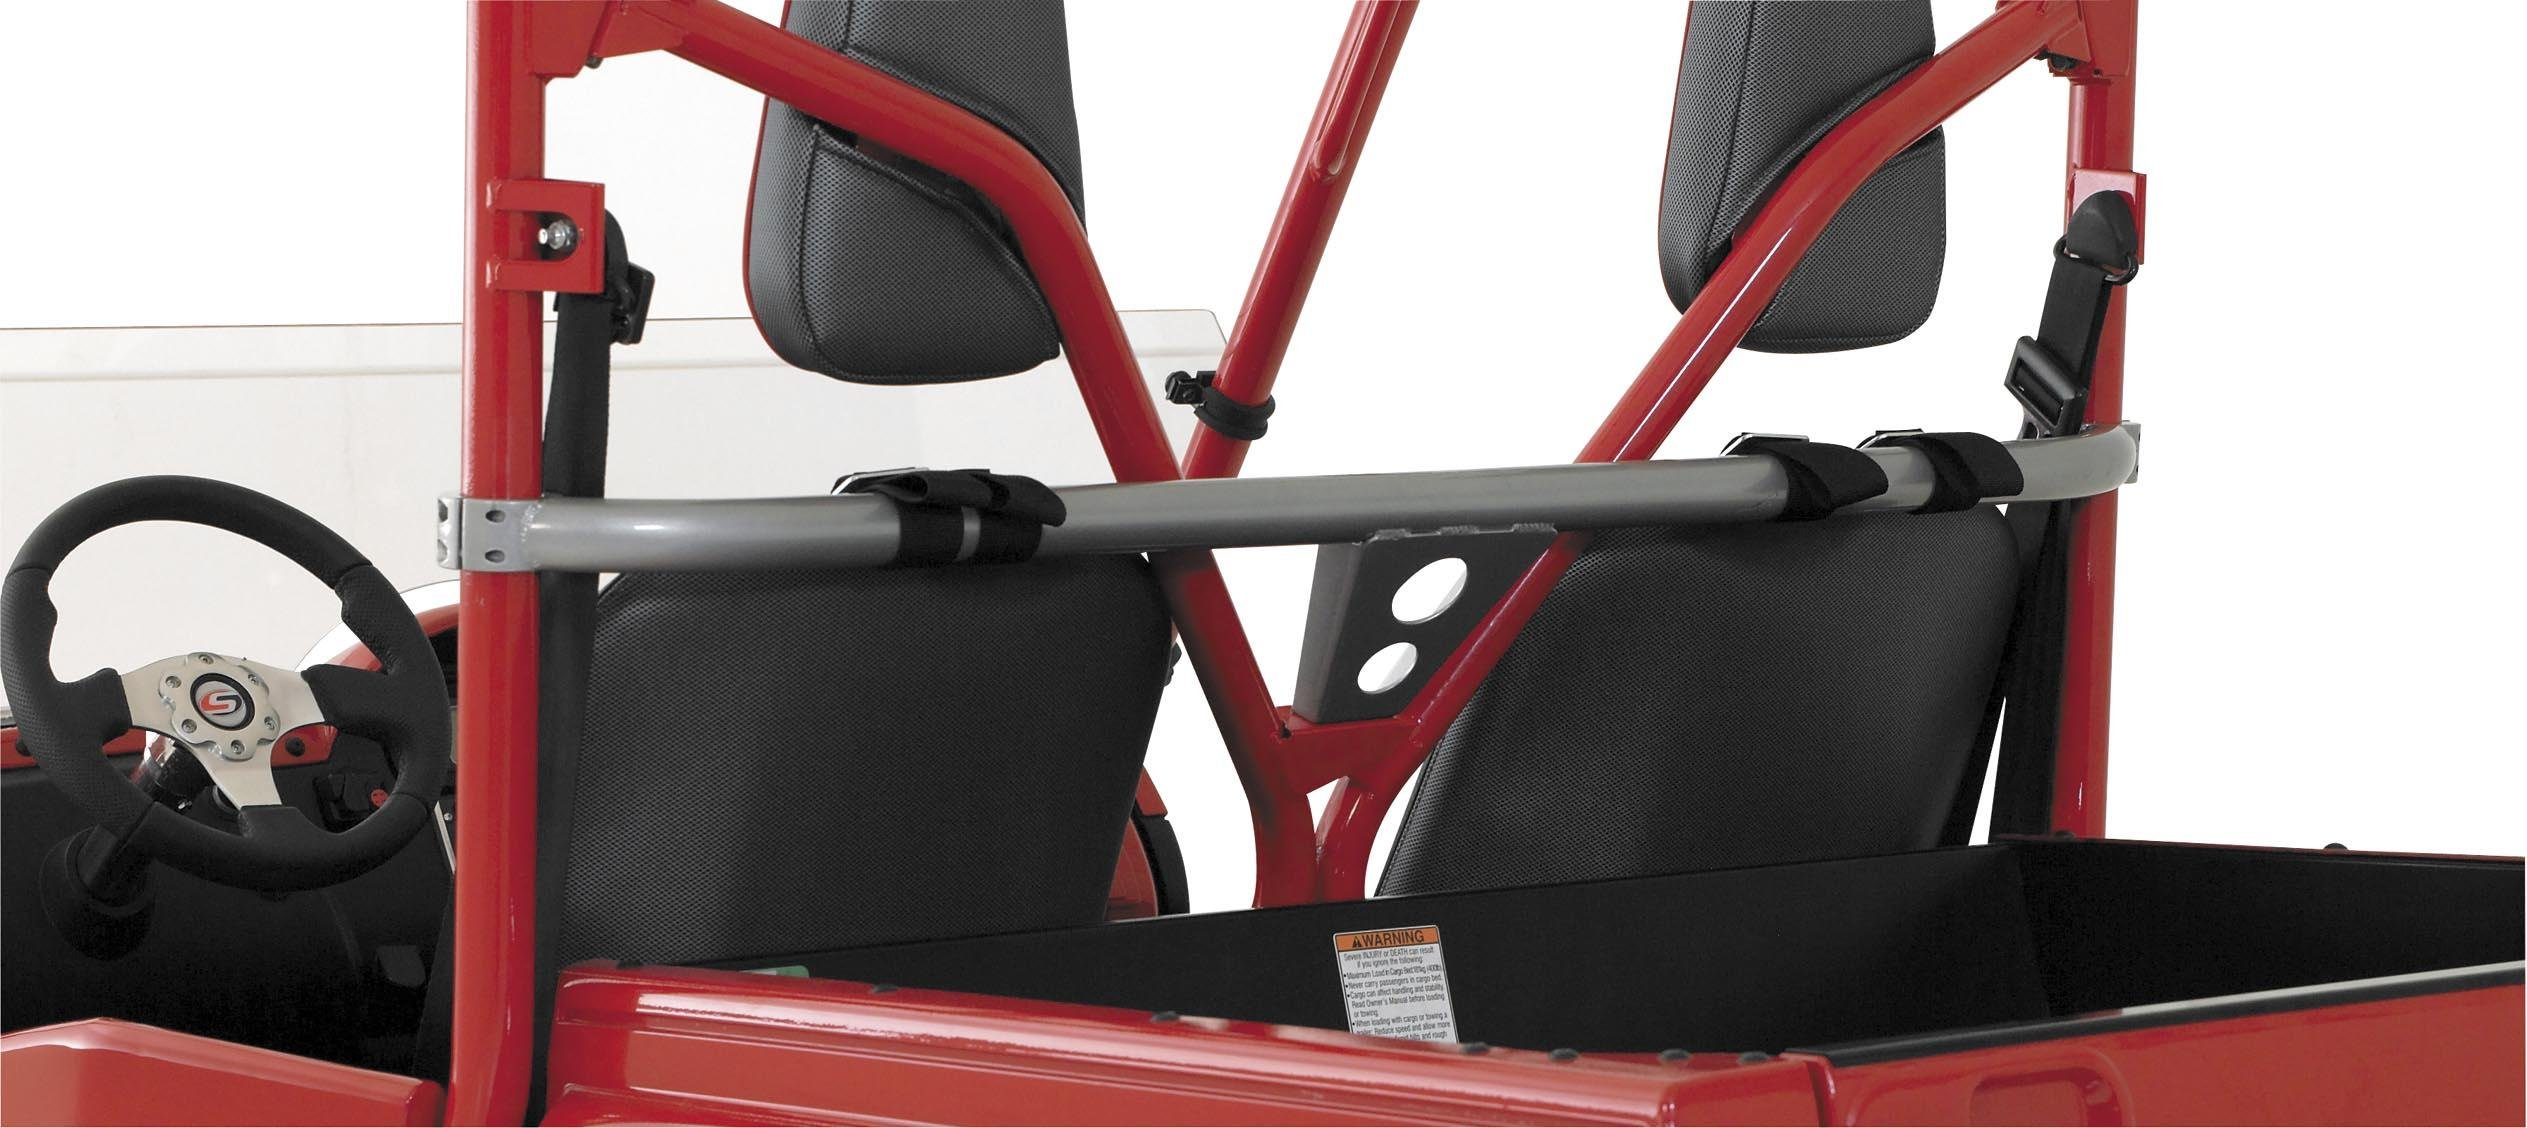 Beard Seats Shoulder Harness Bar 871-300 by Beard Seats